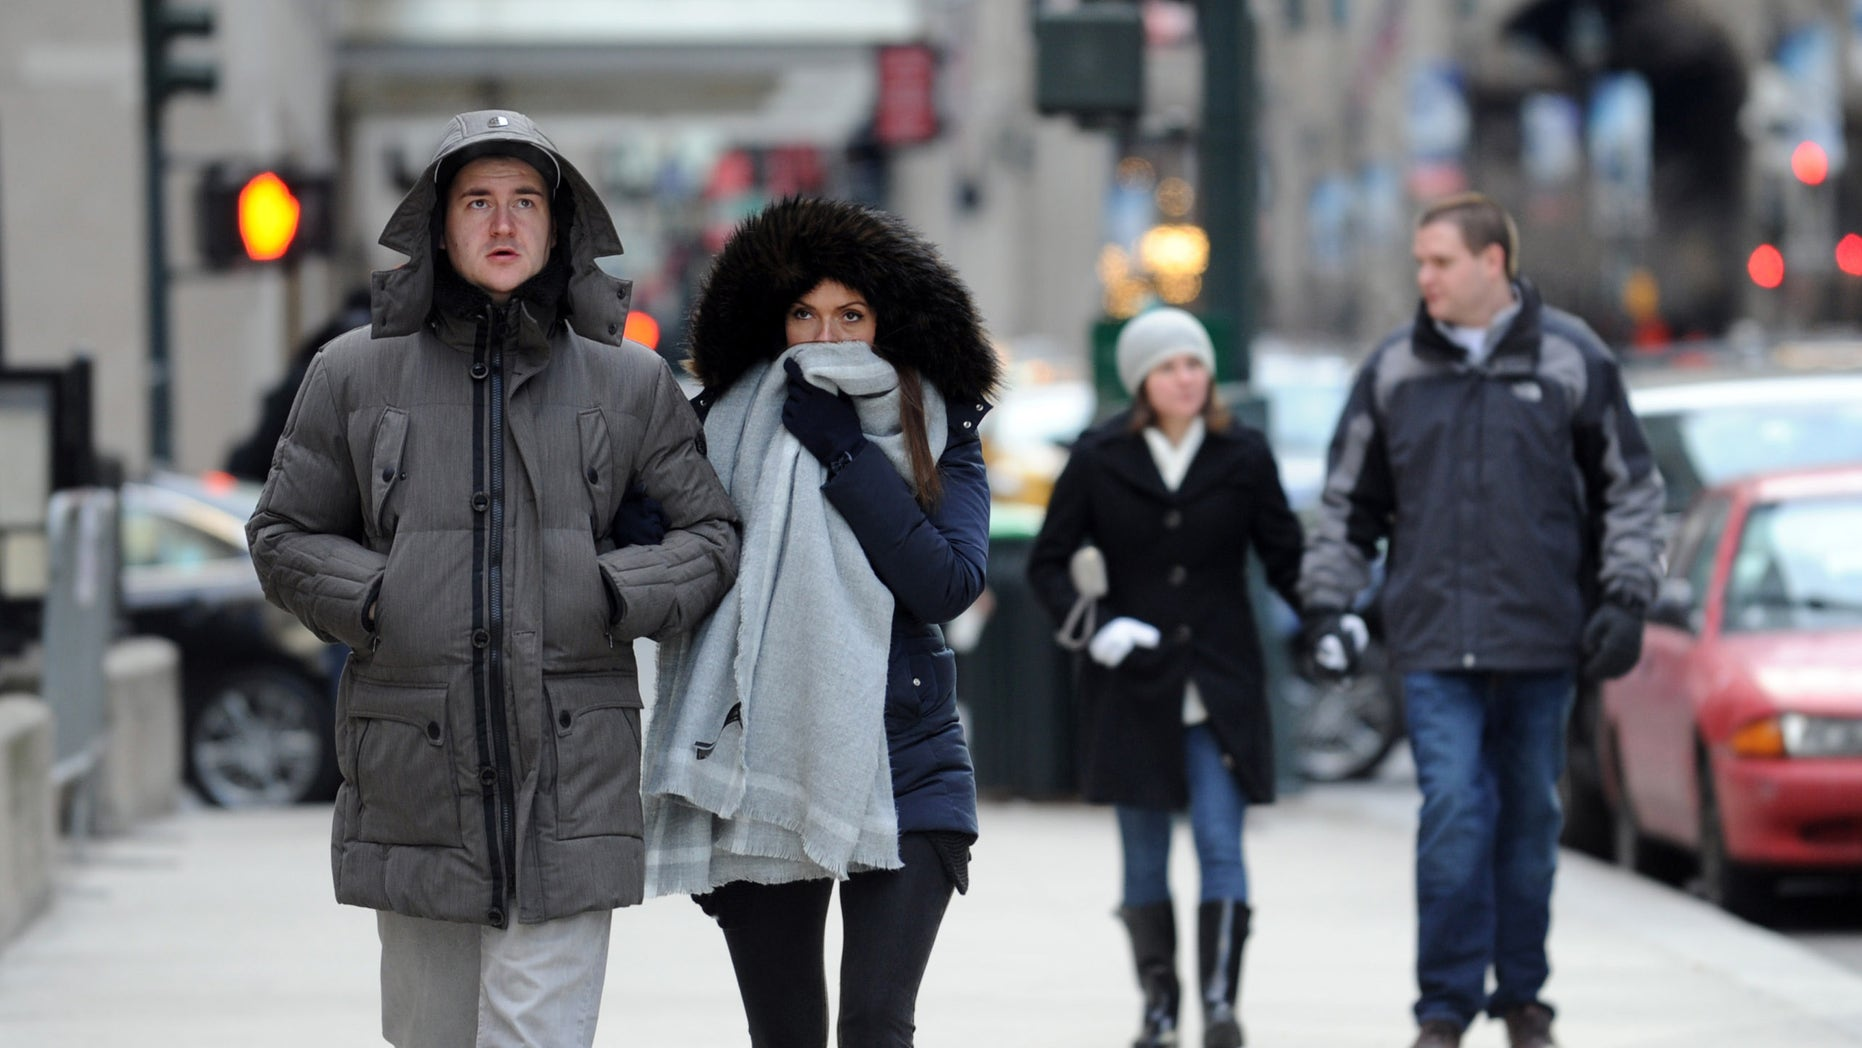 "Benedikt Vom Orde and Julia Felte, tourists from Essen, Germany, walk along Park Avenue in New York during a bitter cold spell, Saturday, Feb. 13, 2016. Bitter temperatures and biting winds had much of the northeastern United States bundling up for the some of the worst cold of the winter â a snap so bad it forced an ice festival in Central Park to cancel and caused an Interstate pileup that killed three. ""These temperatures can be life threatening â especially for seniors, infants and people with medical conditions,"" New York City Mayor Bill de Blasio said. Stay indoors and take care of each other, he counseled. (AP Photo/Diane Bondareff)"